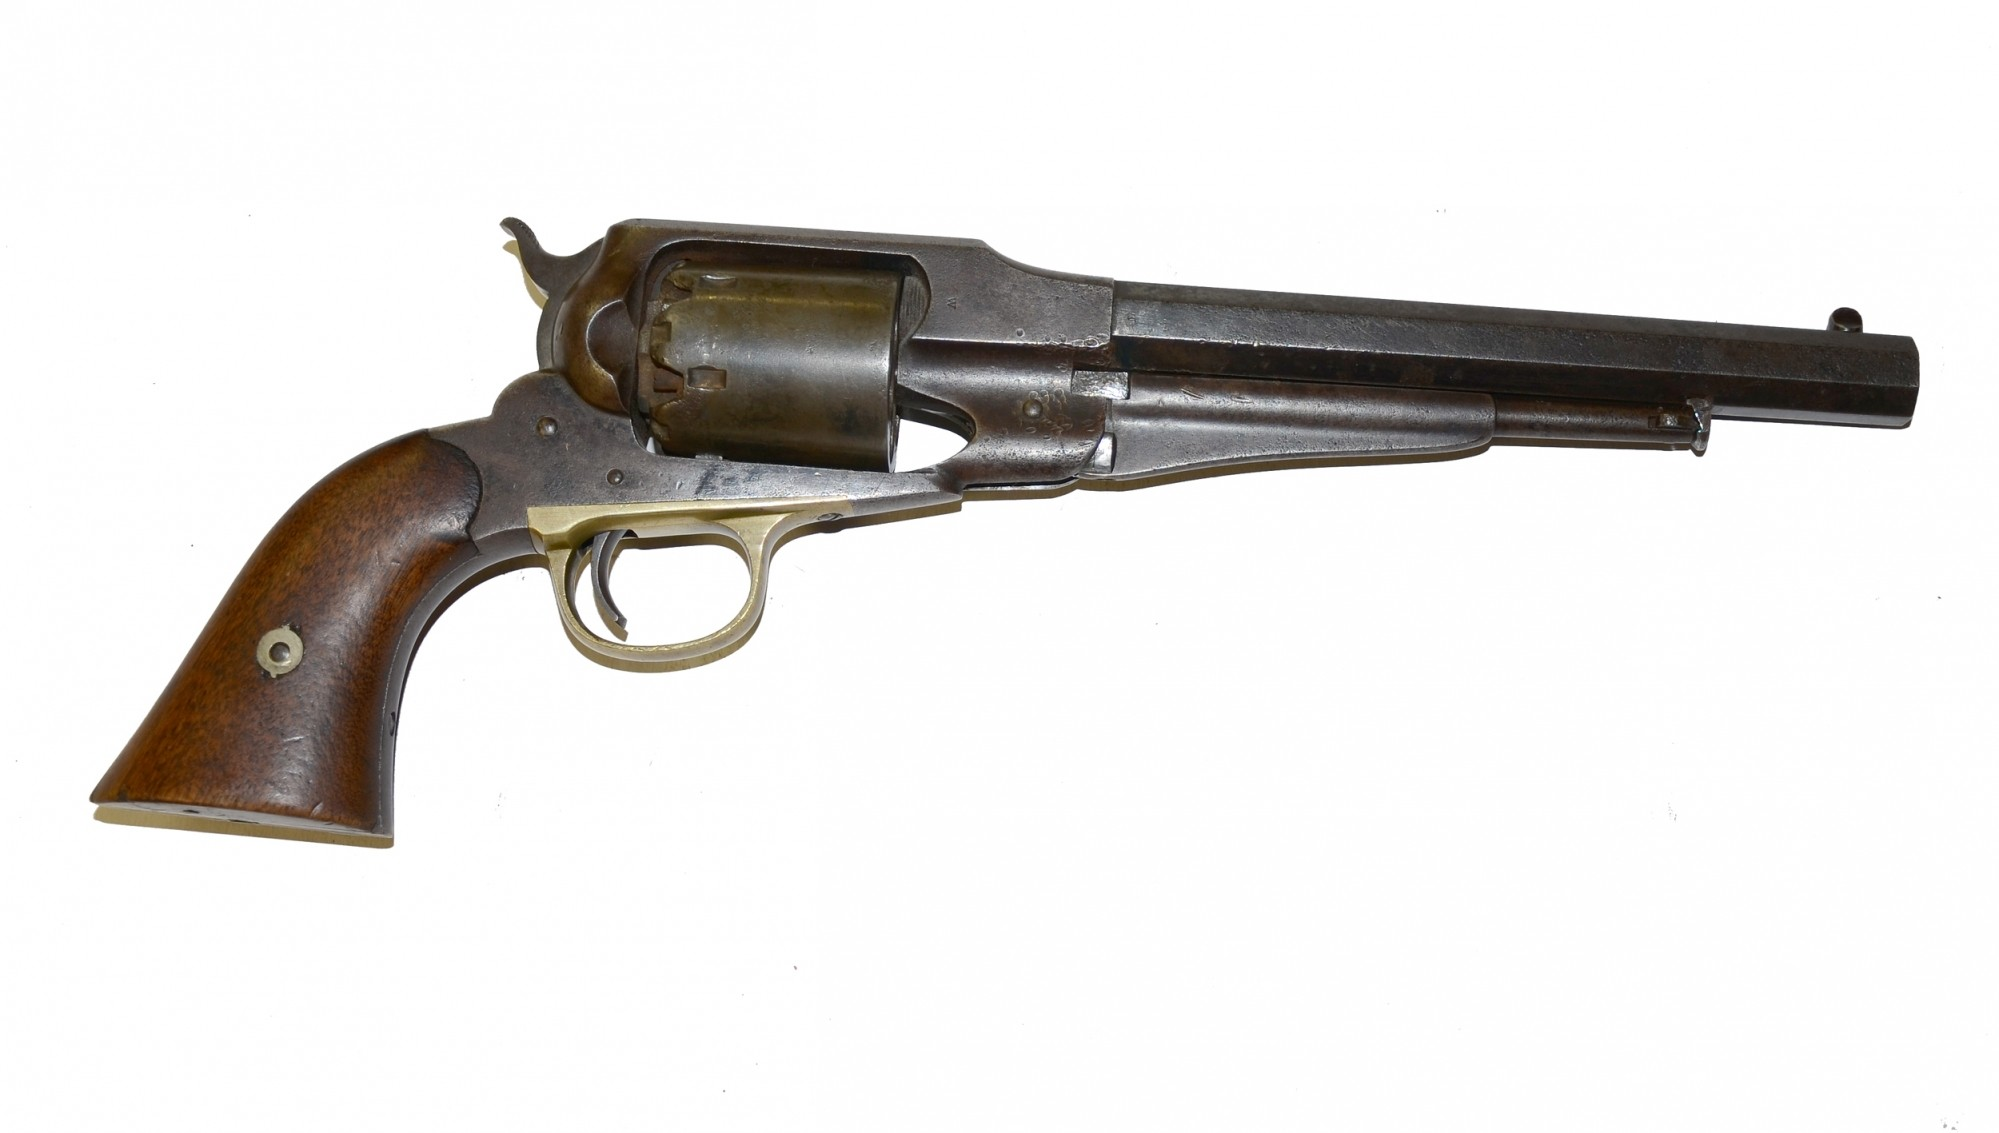 CIVIL WAR REMINGTON NEW MODEL ARMY REVOLVER